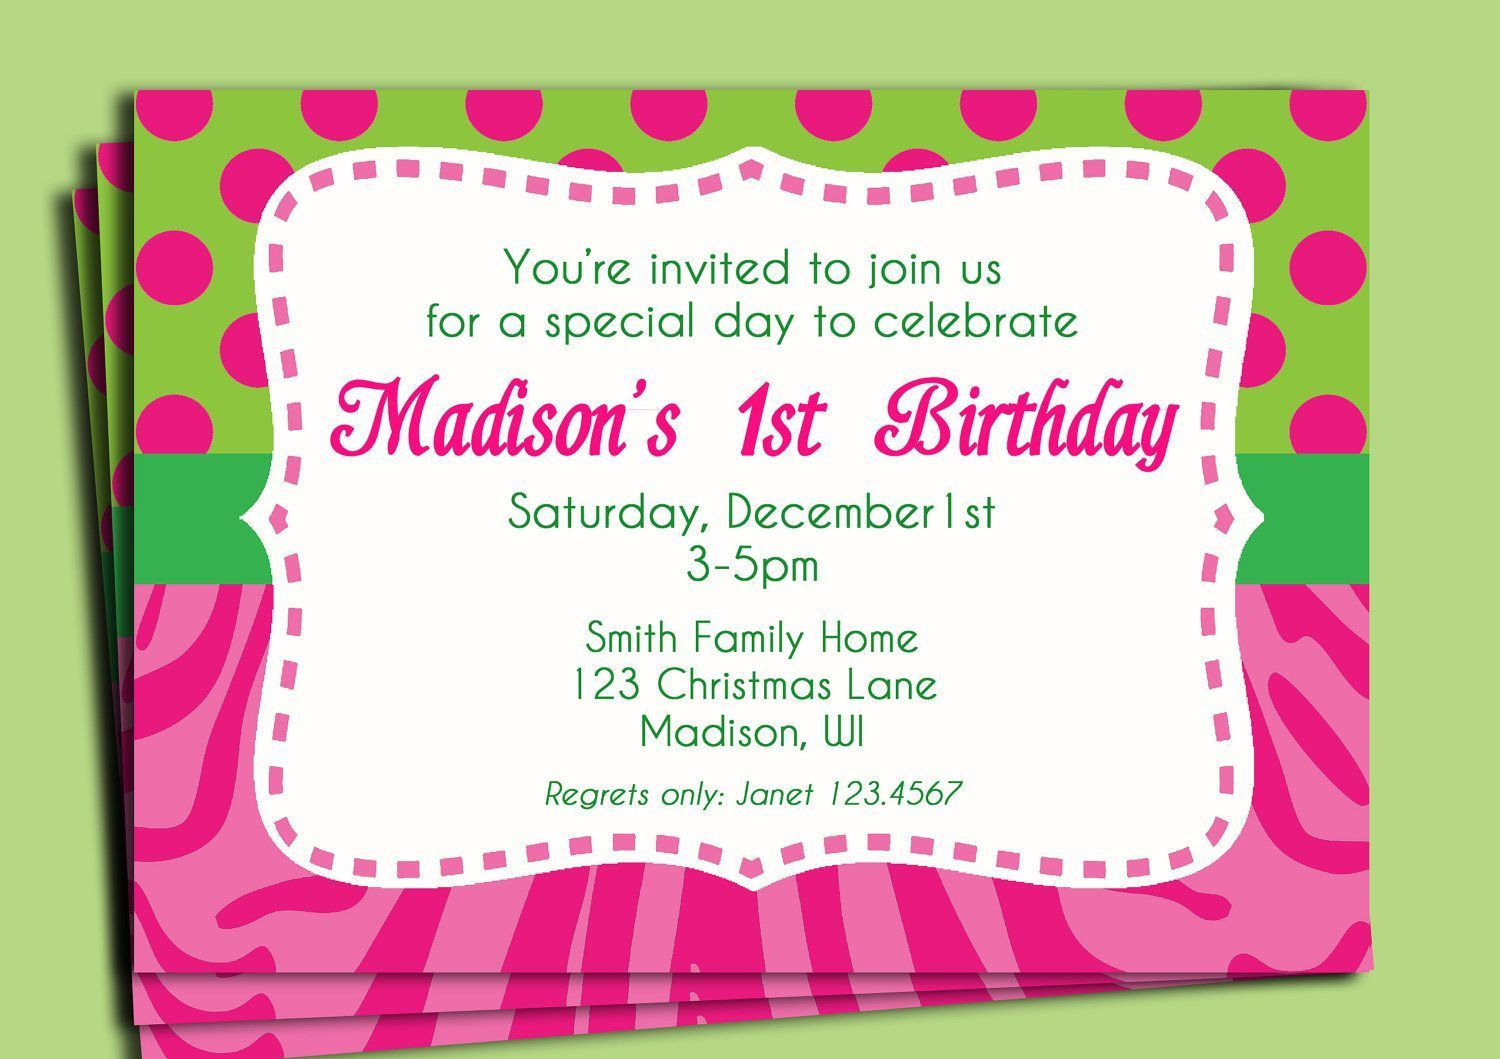 002 Magnificent Birthday Invitation Wording Sample 5 Year Old High Definition Full